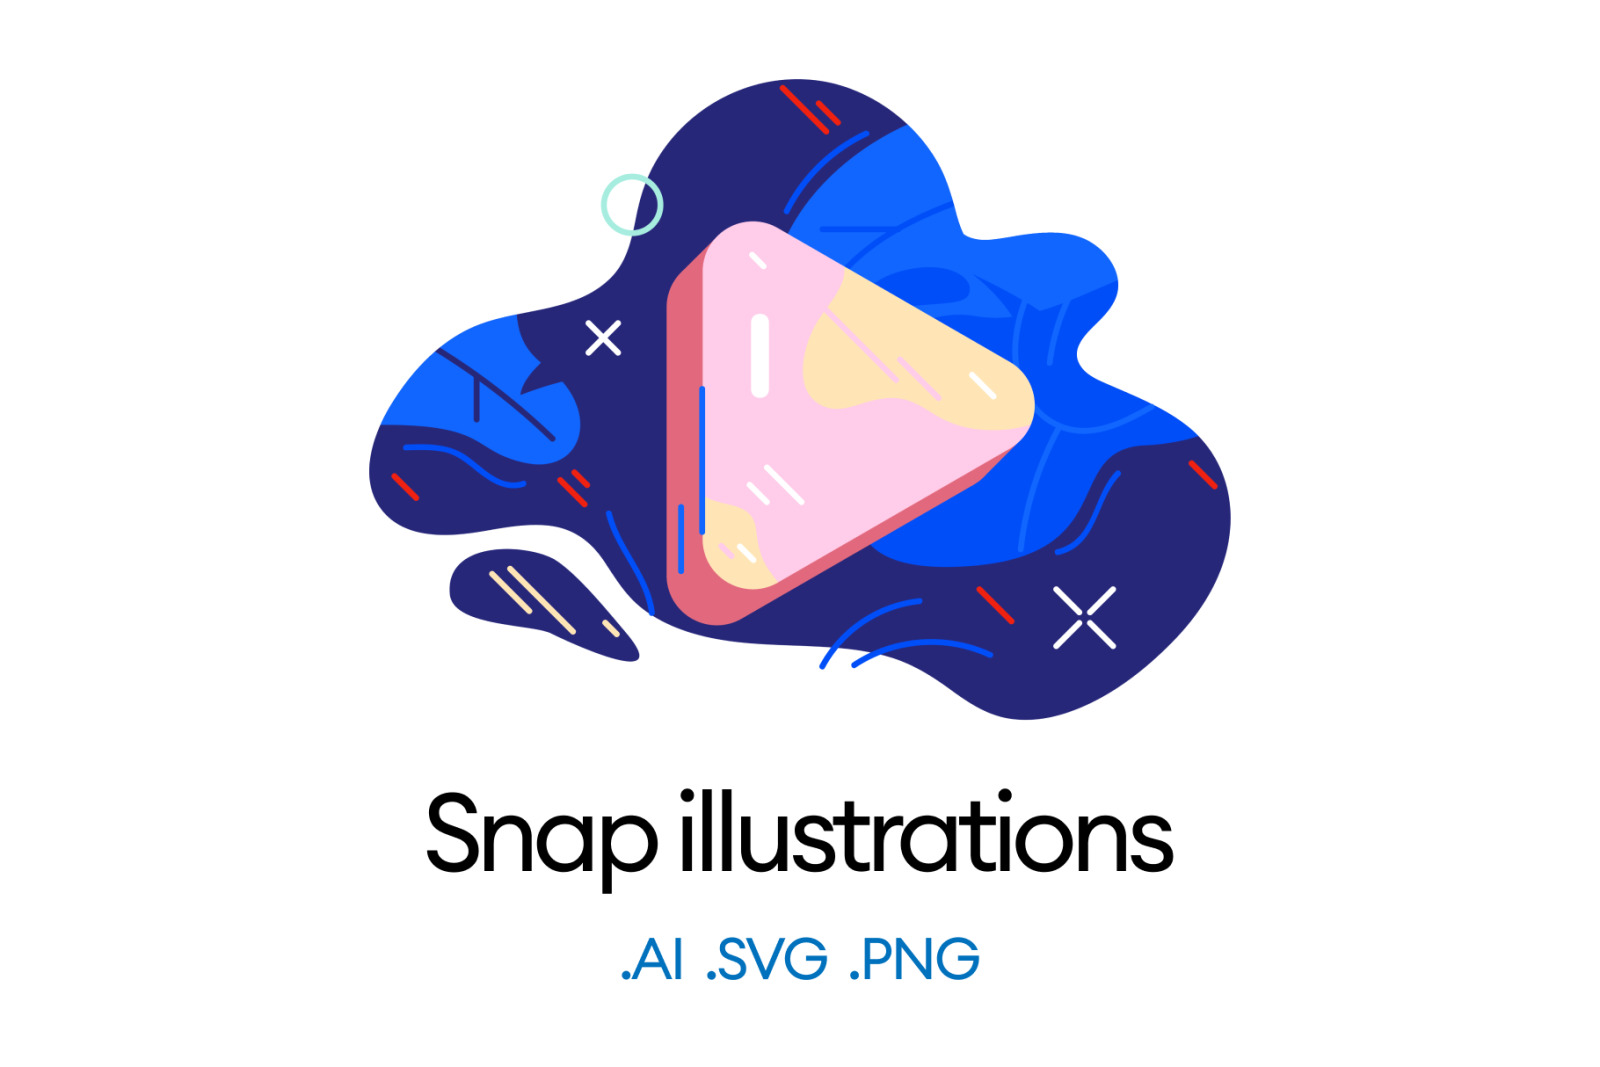 Snap Illustrations